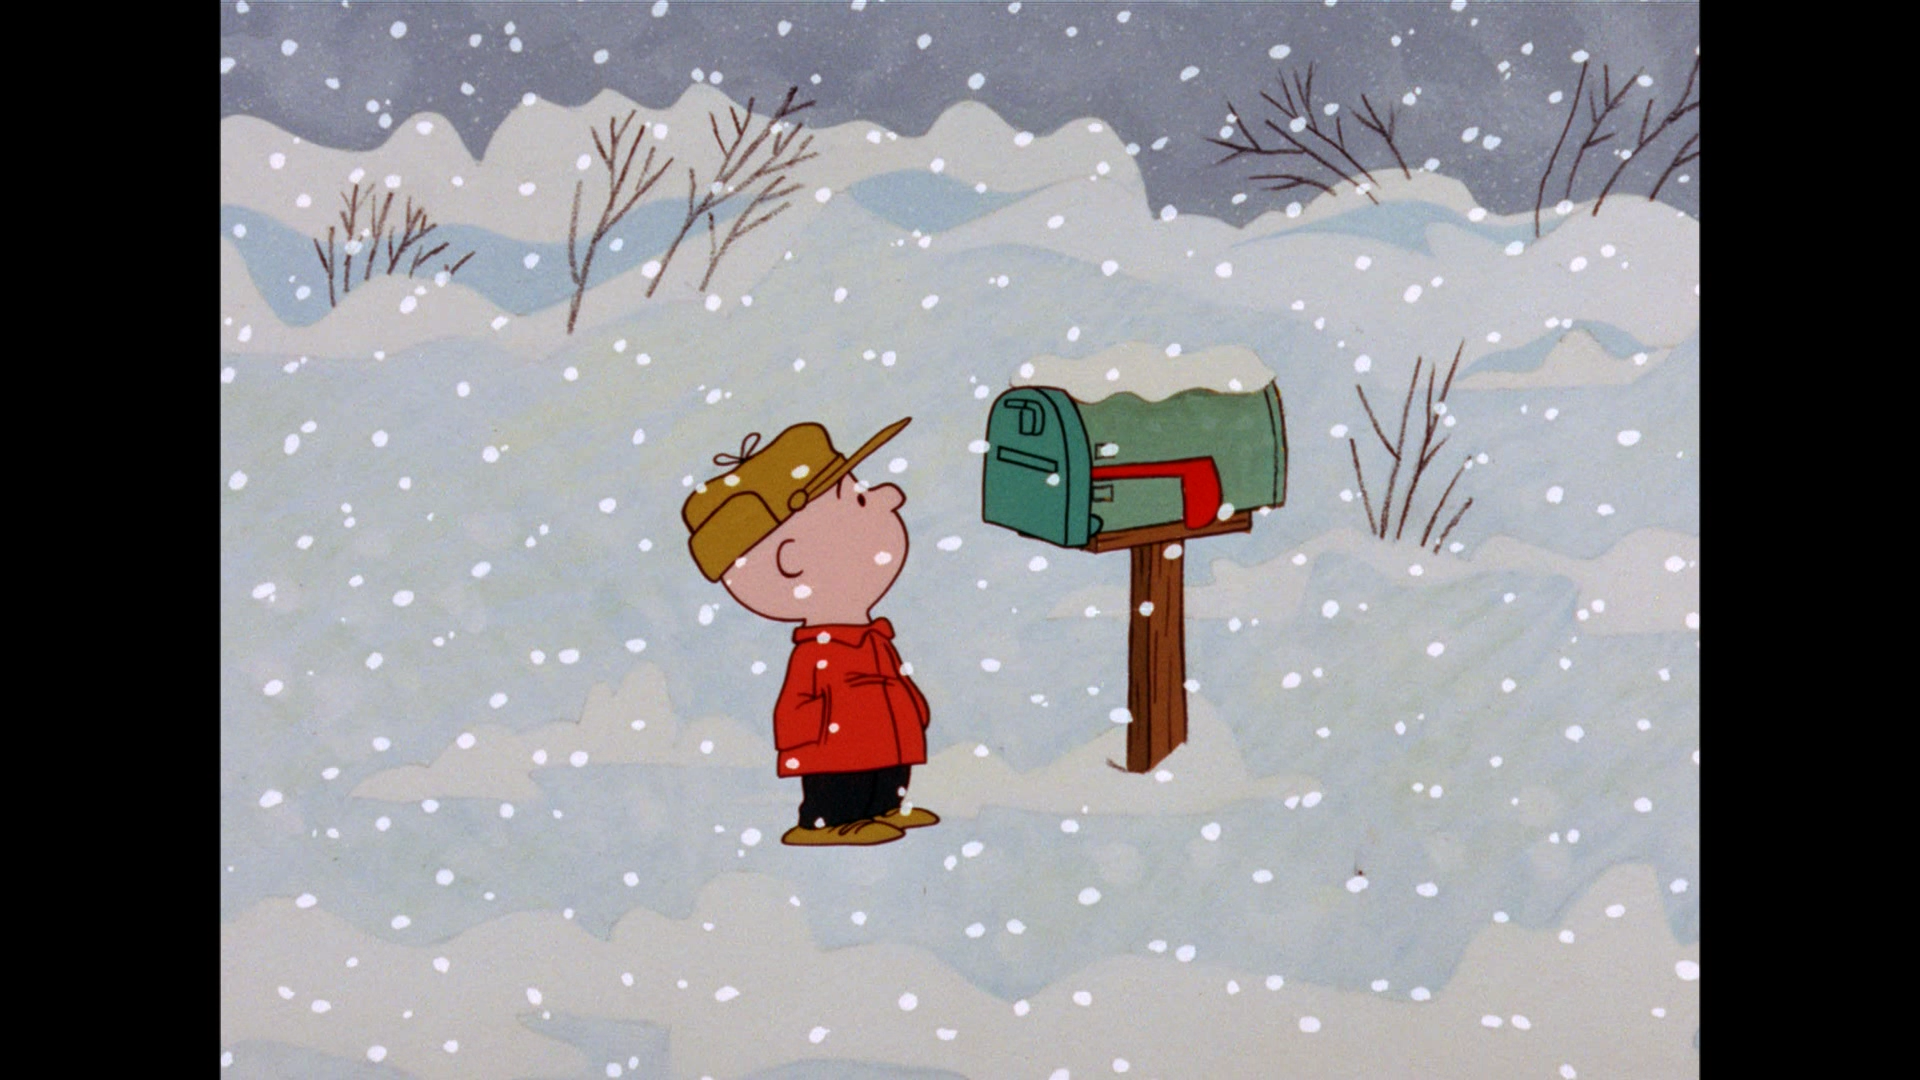 a charlie brown christmas - possible cover idea | December Daily ...